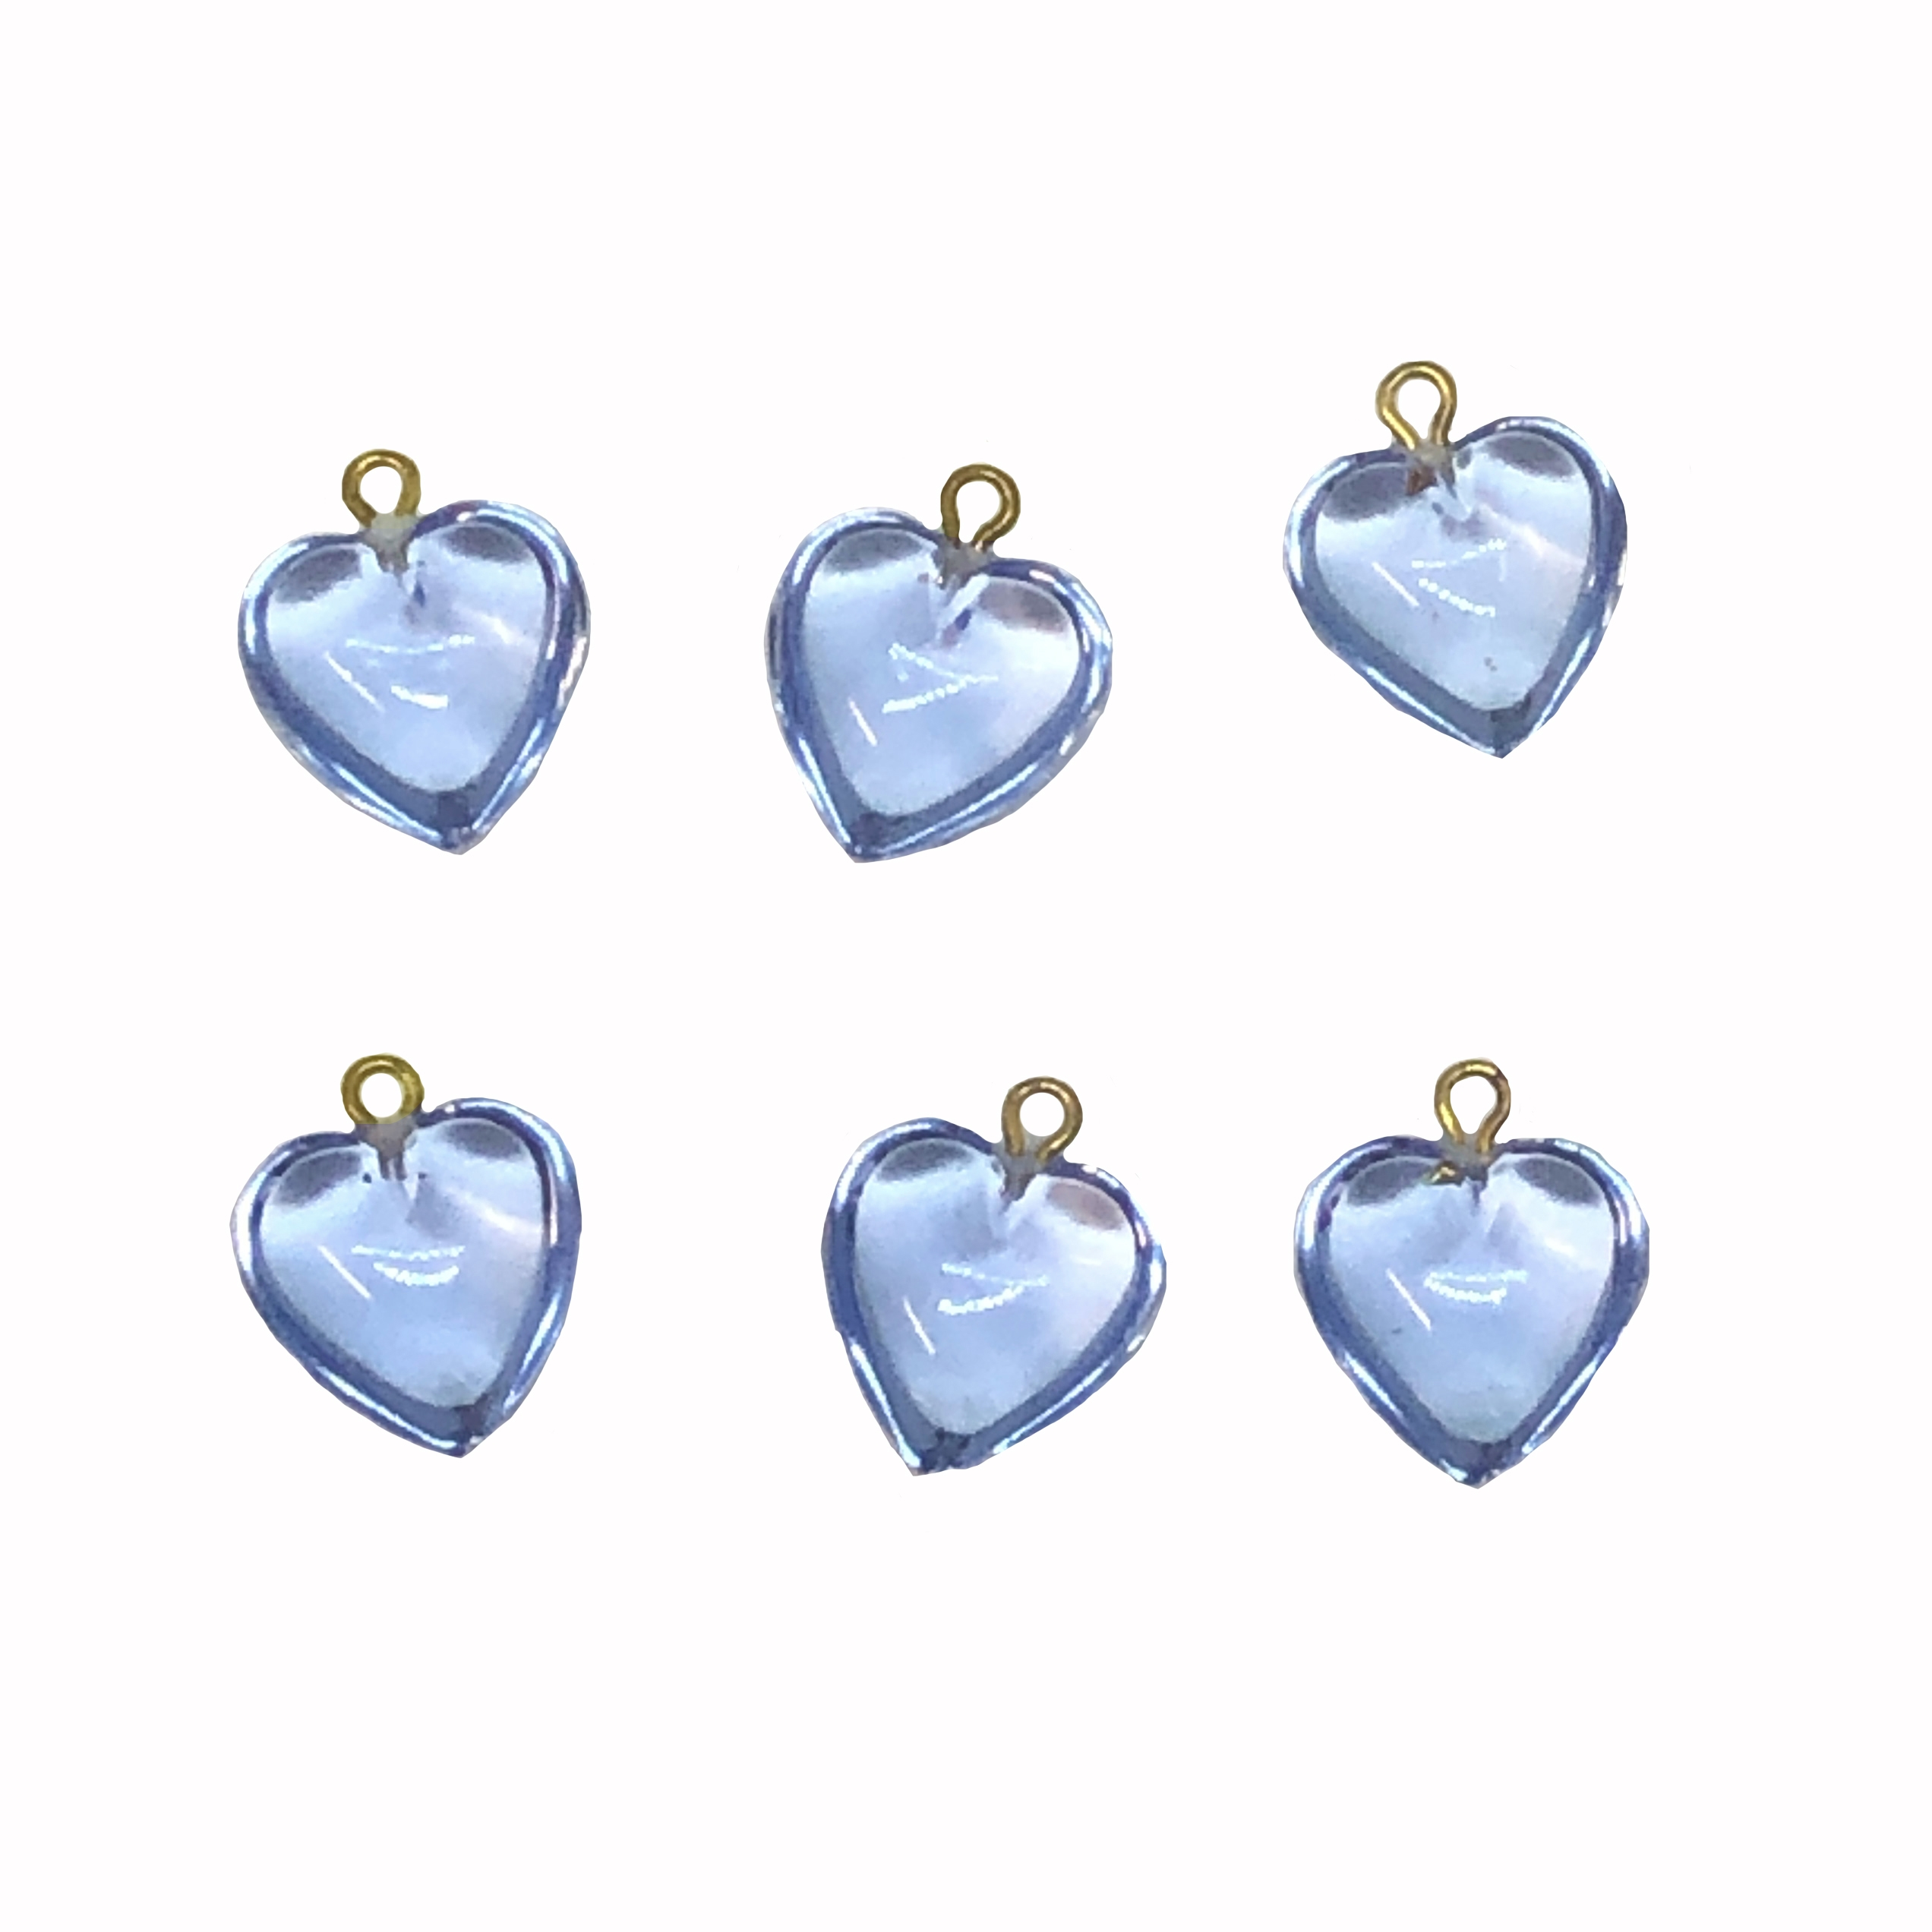 blue hearts, heart charms, 03582, acrylic hearts, gold tone loop, plastic heart charms, heart, blue, Bsue Boutiques, jewelry supplies, charms, heart charm, hearts